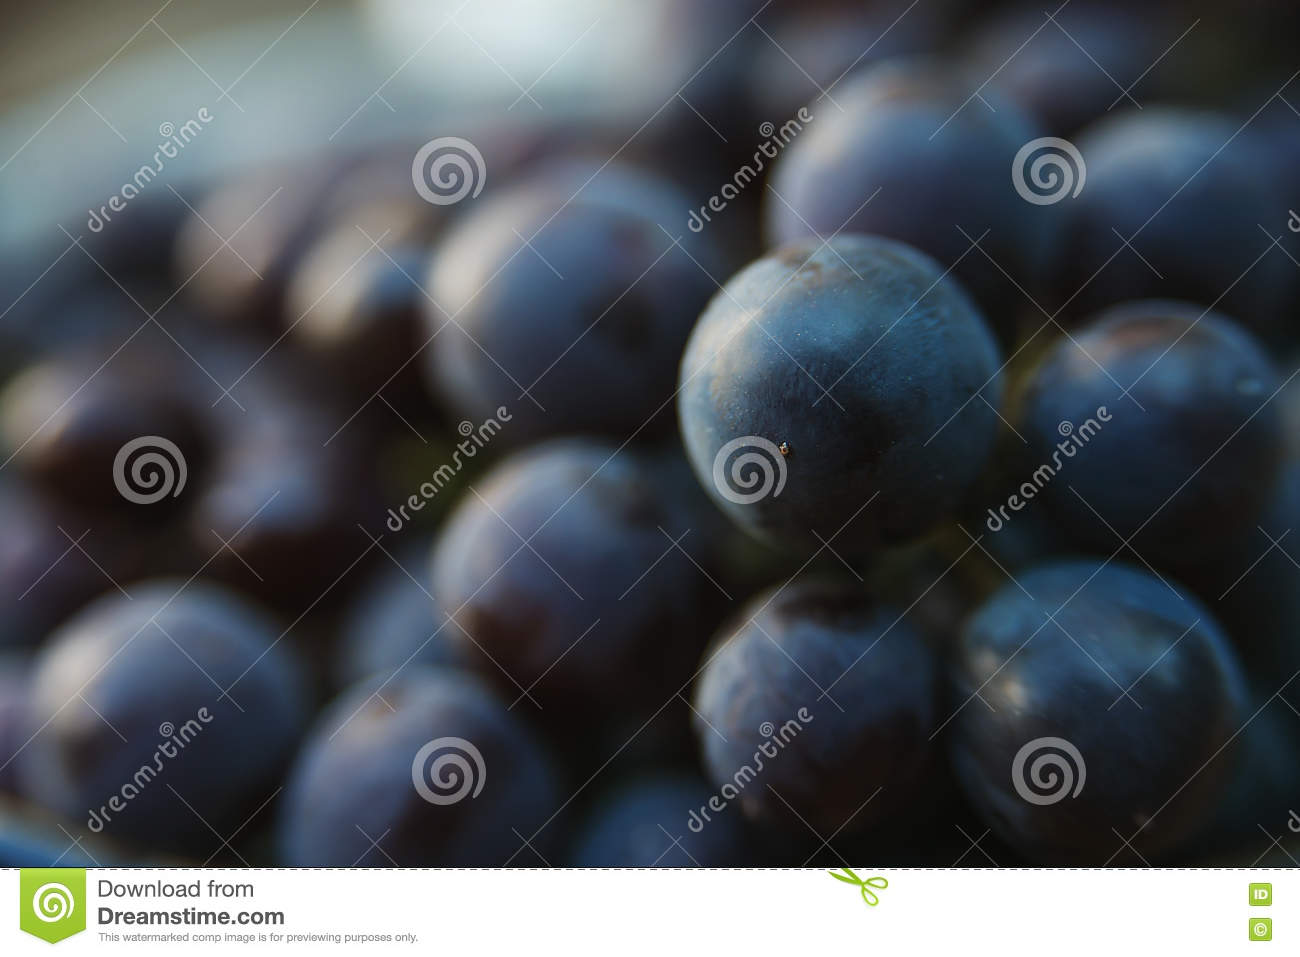 Grapes in plate outdoor, close up.